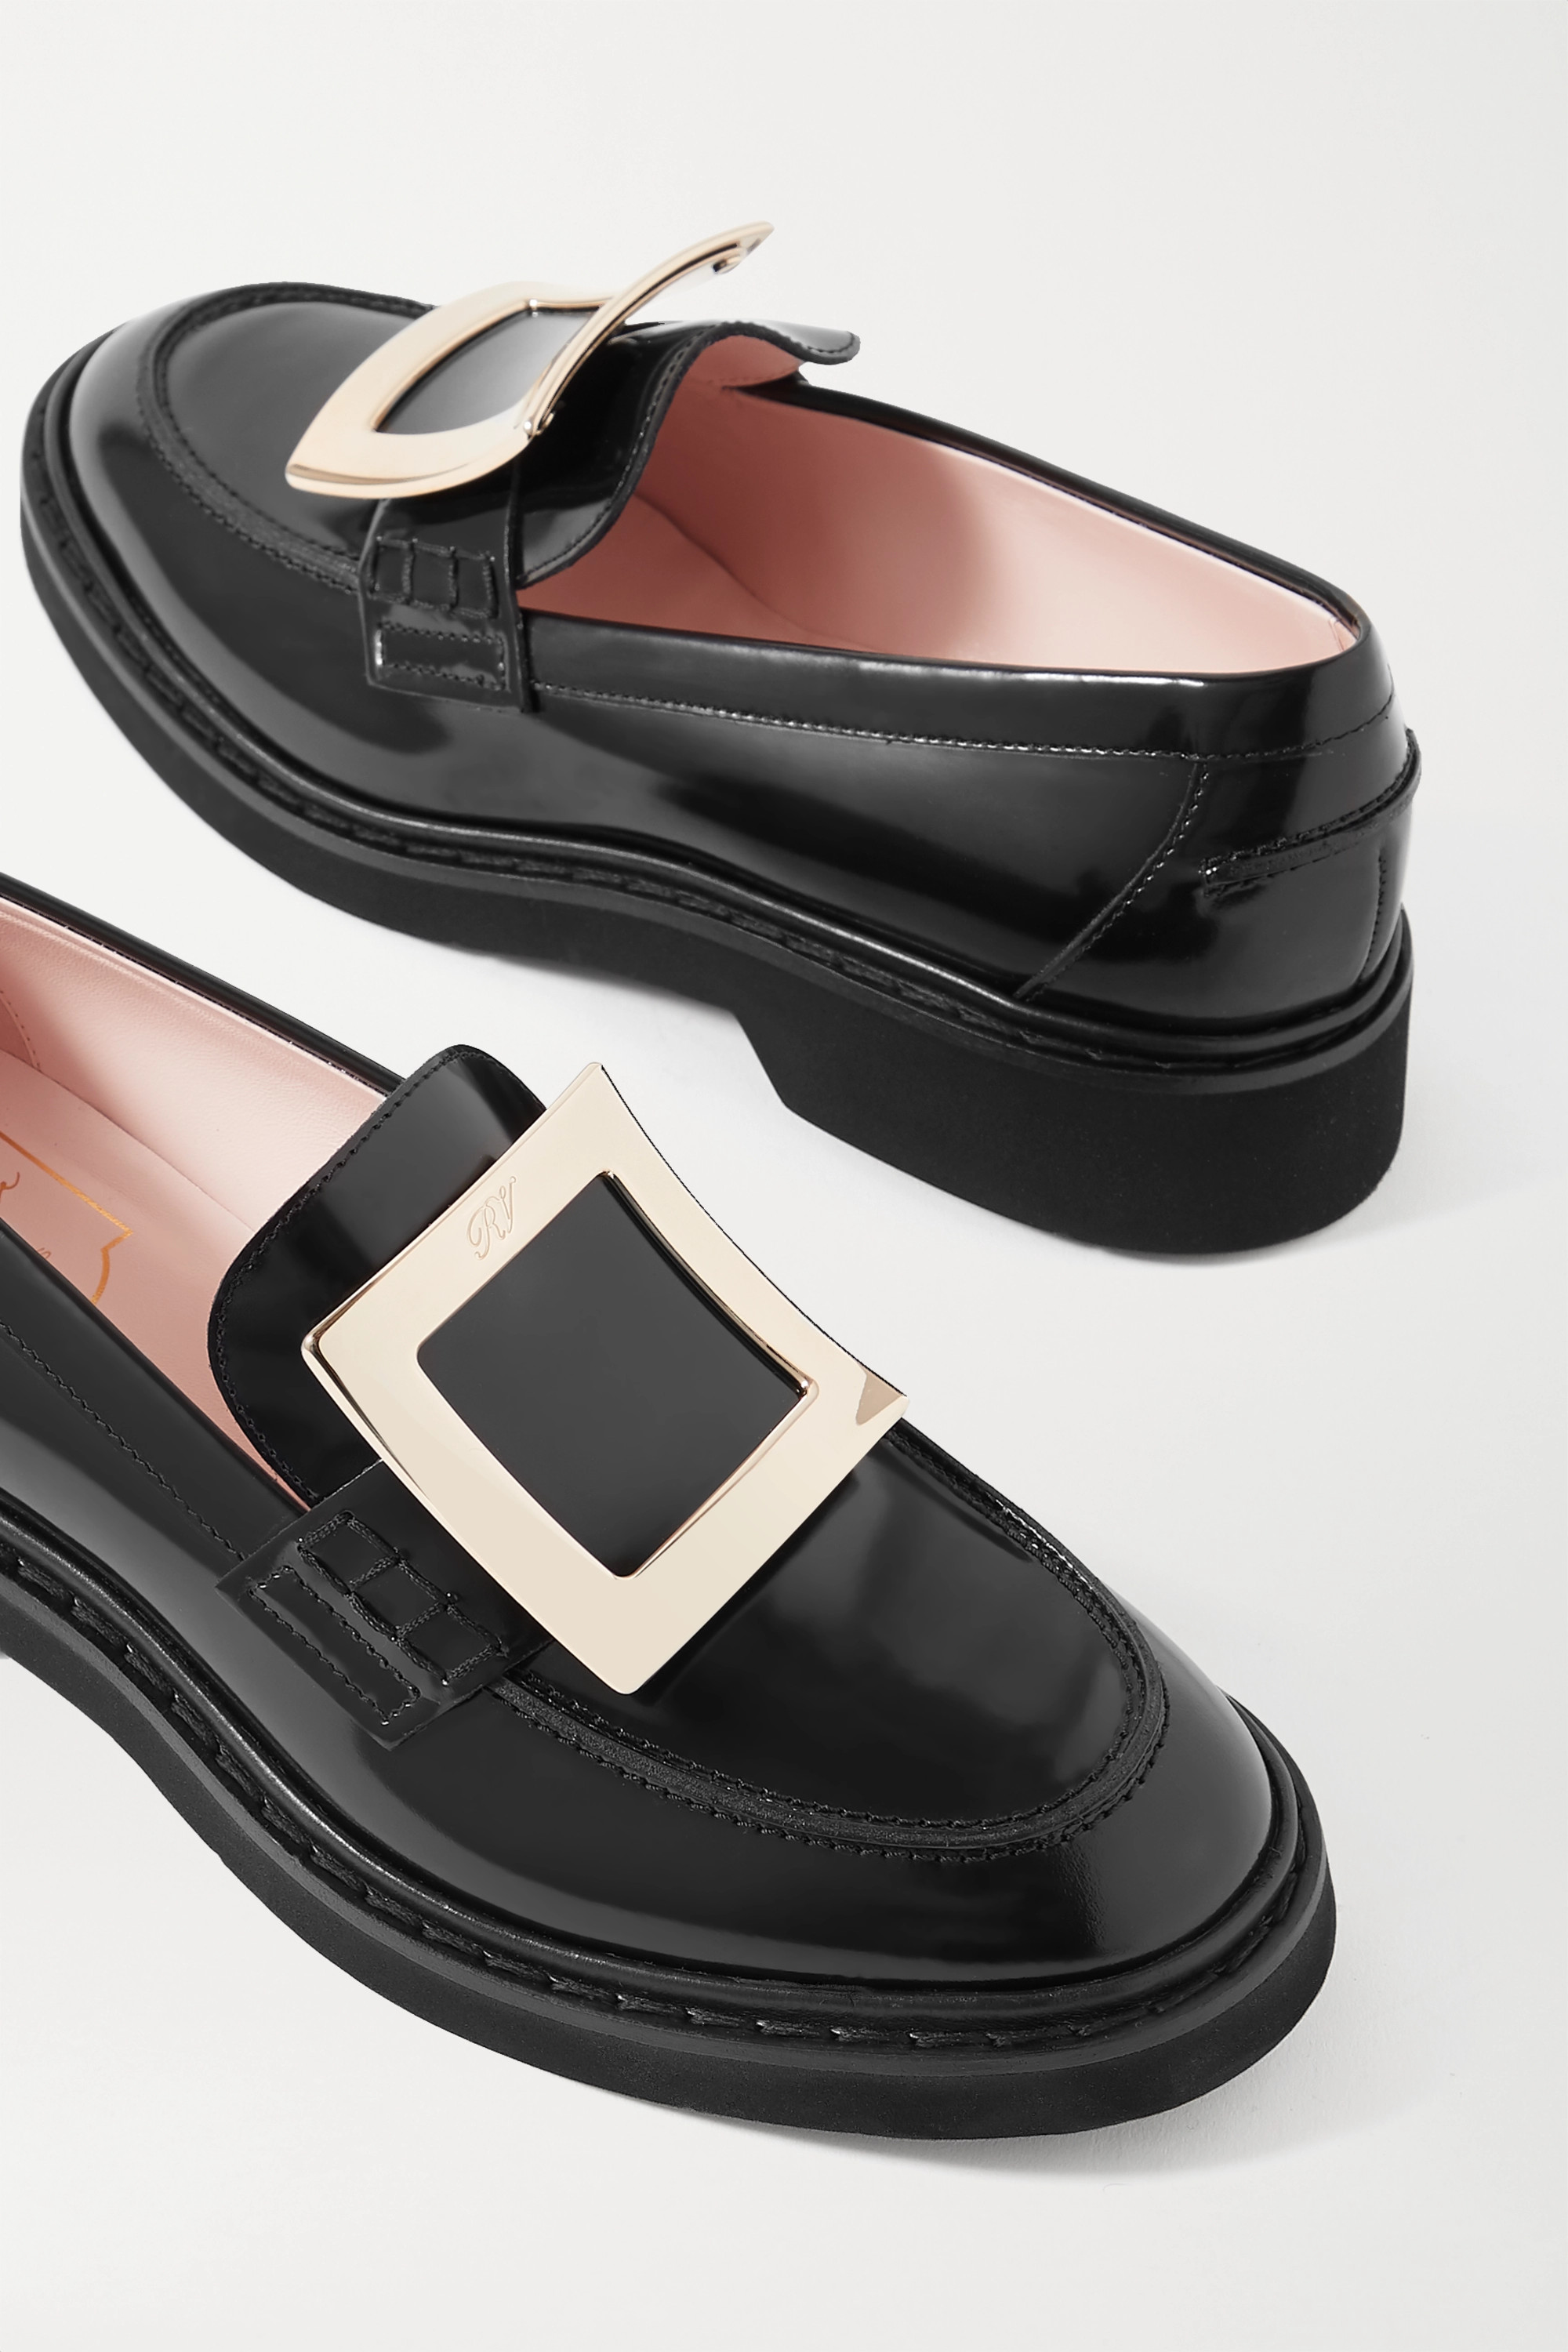 Roger Vivier Viv Ranger embellished patent-leather loafers